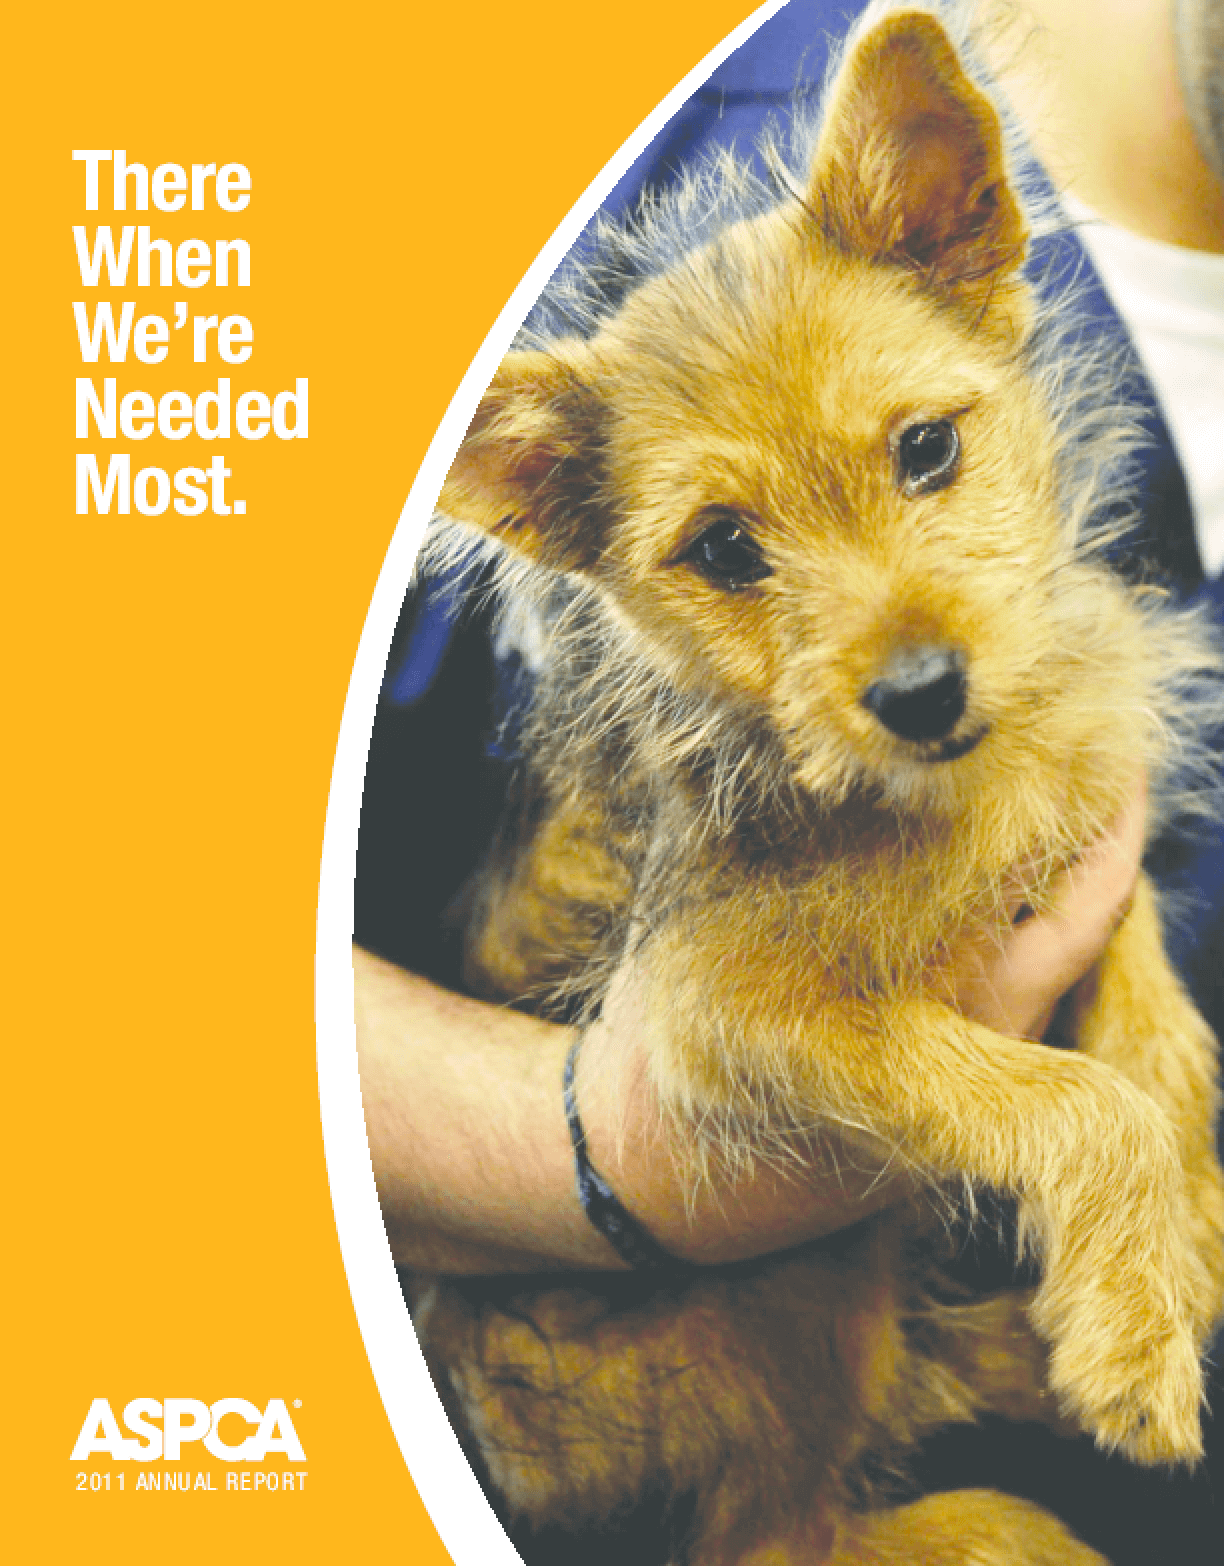 There When We're Needed Most: The ASPCA's 2011 Annual Report